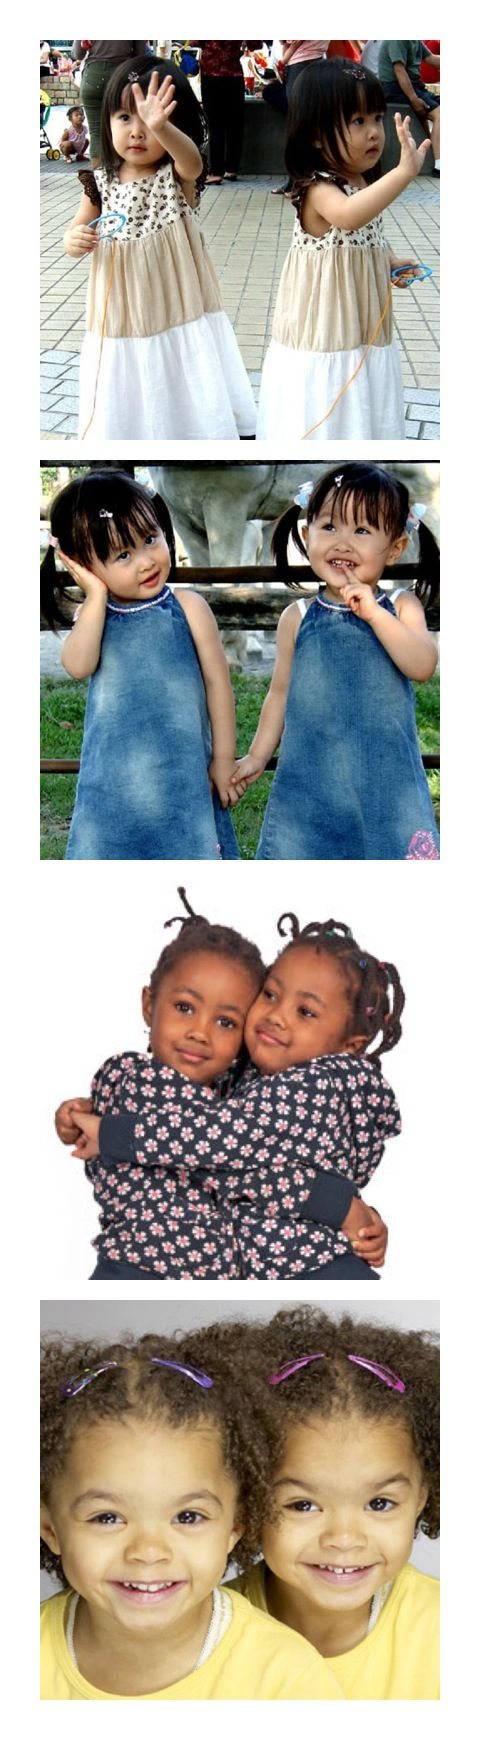 Identical twins part 3 4